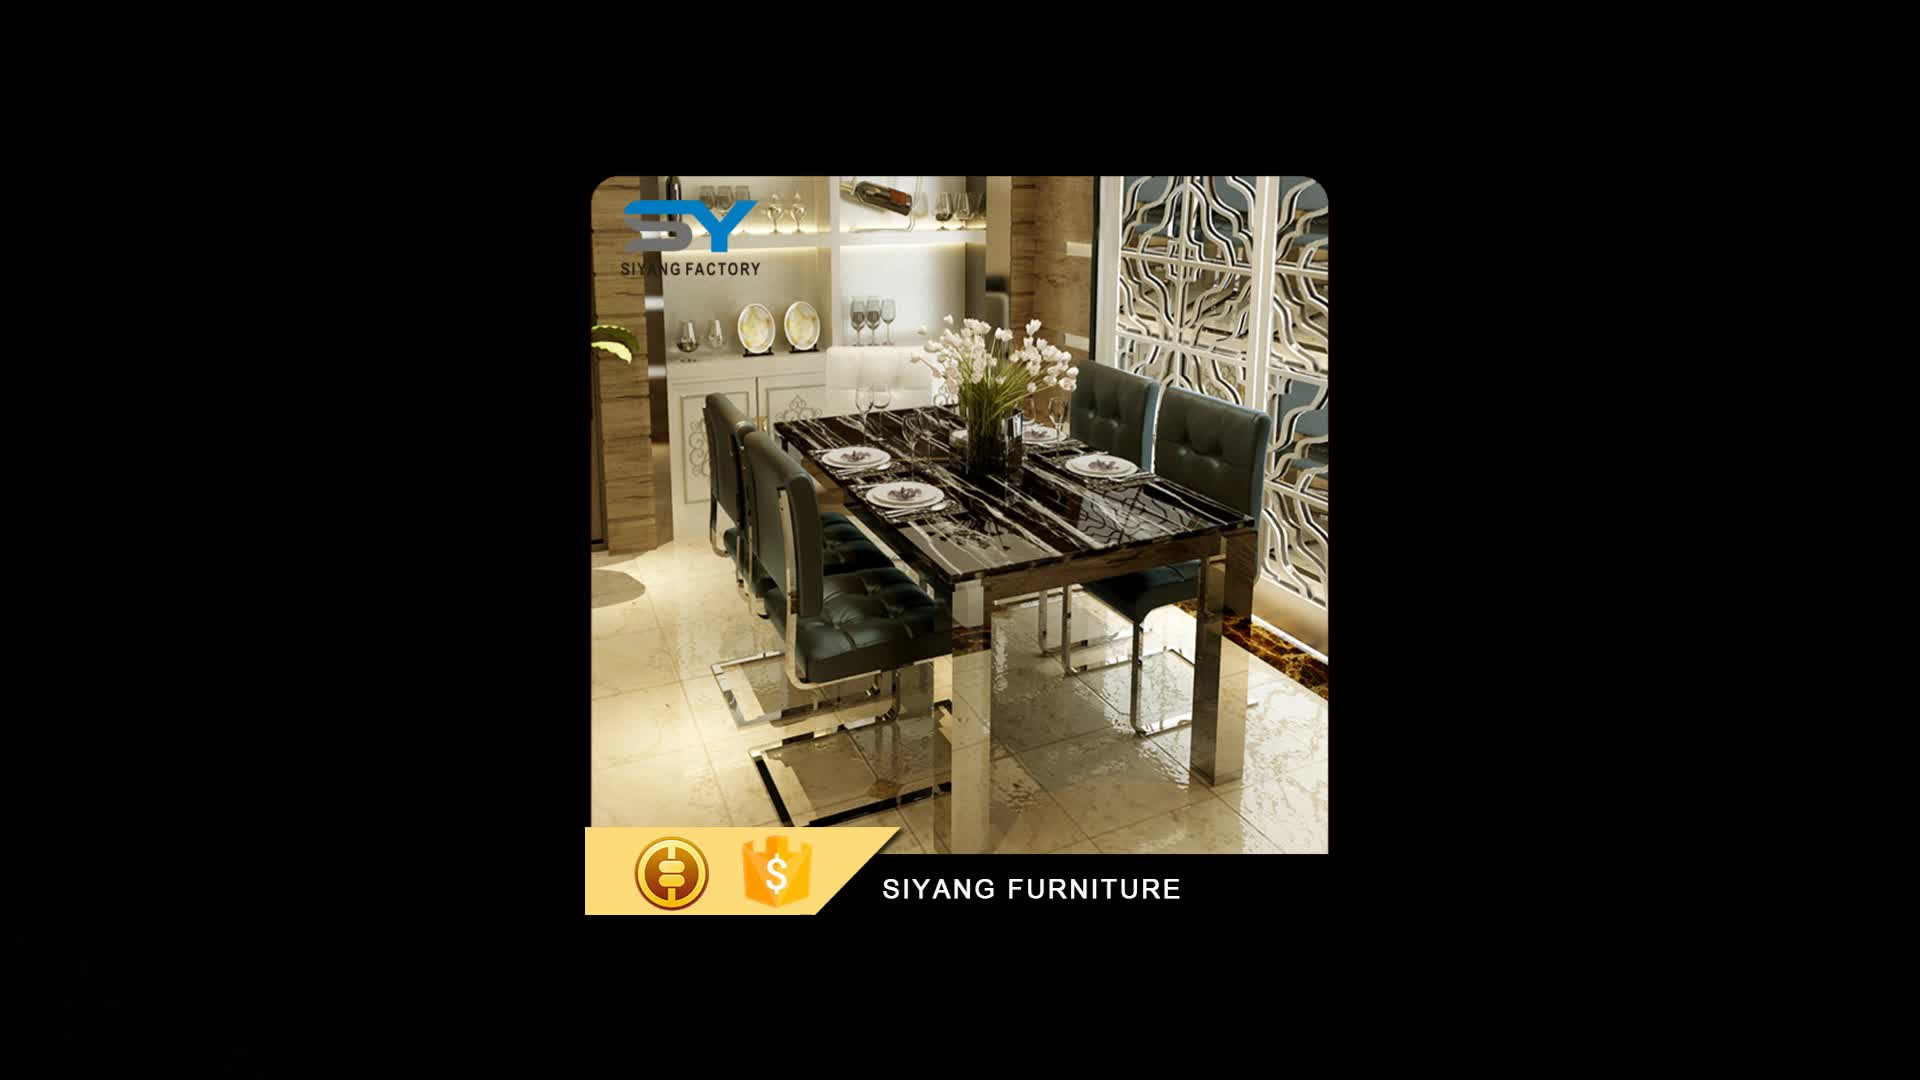 Hotel furniture dining table set stainless steel dining table with 6 chairs CT031